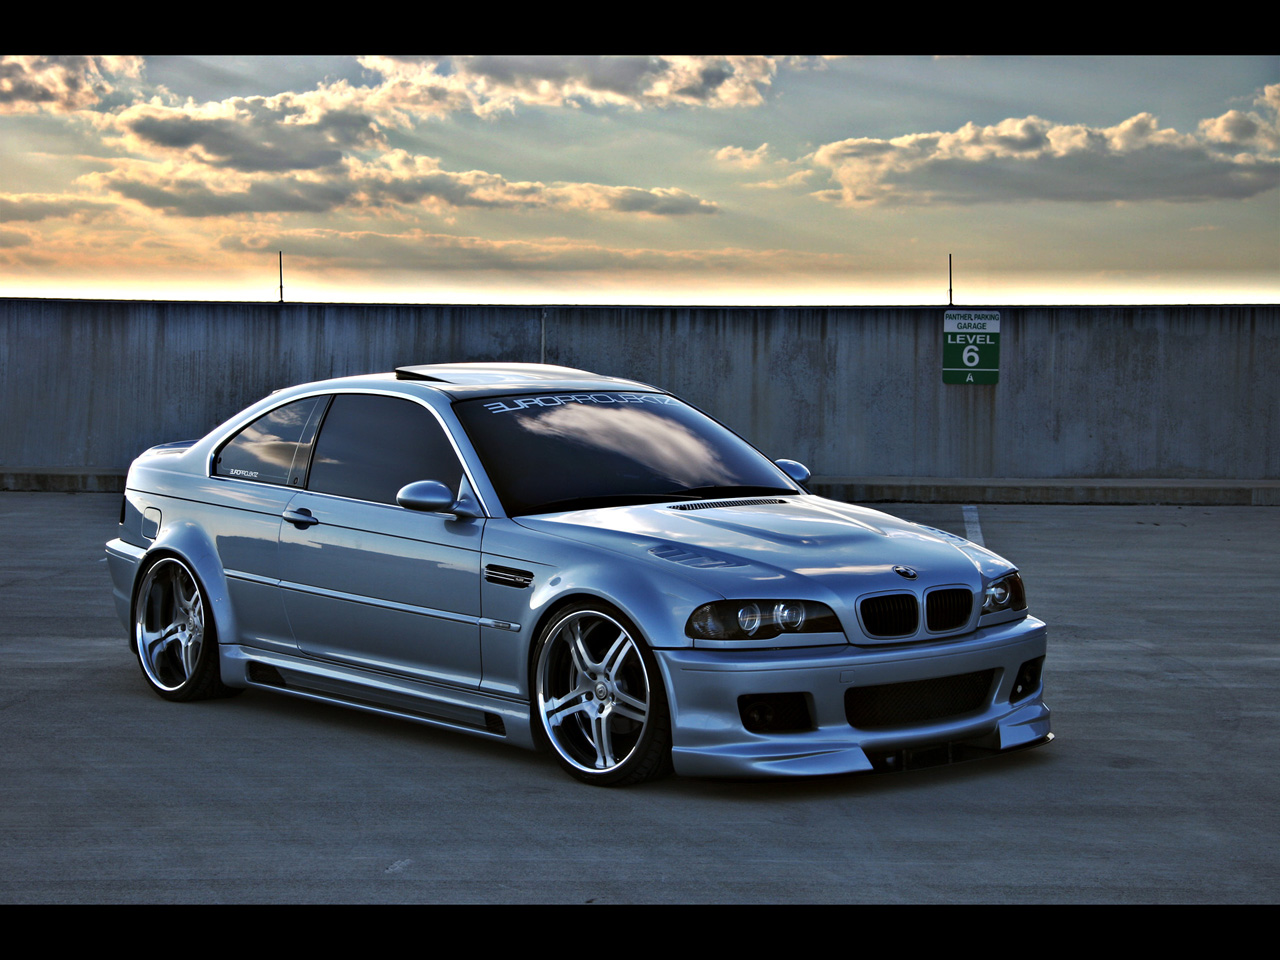 Bmw M3 2000 Review Amazing Pictures And Images Look At